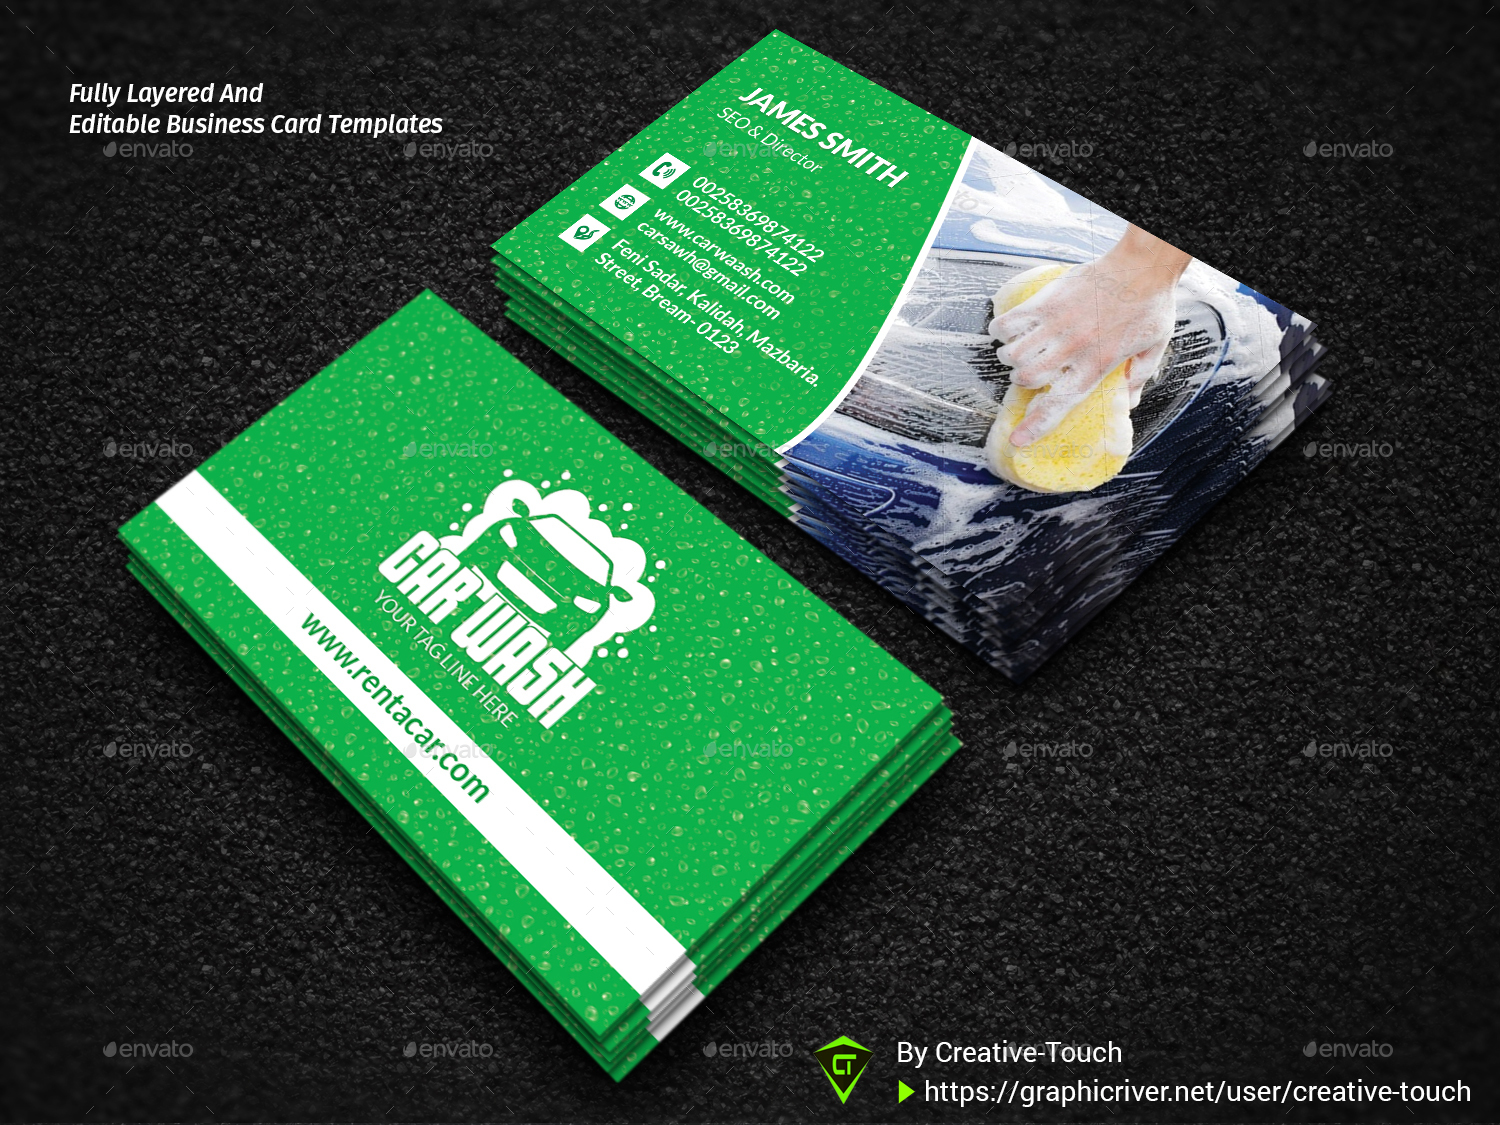 Car Wash Business Card by Creative-Touch | GraphicRiver